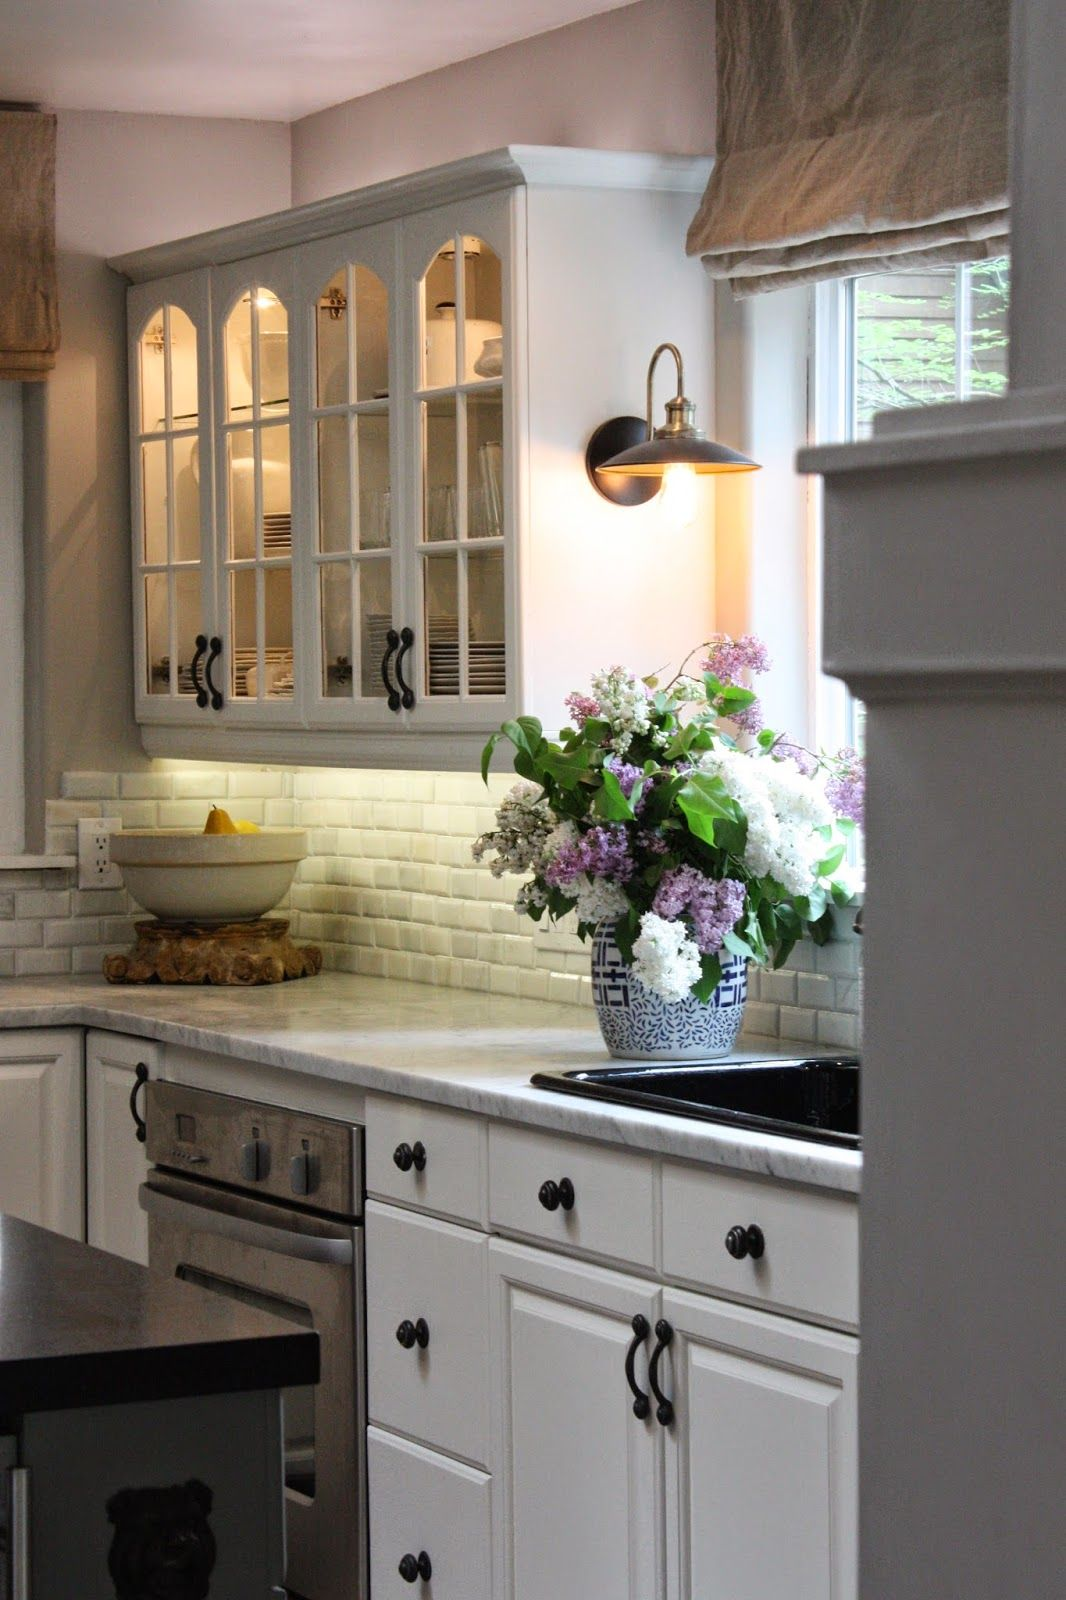 over the counter lighting. Kitchen; Love The Sconce Over Counter, White Cabinets And Natural Light Counter Lighting